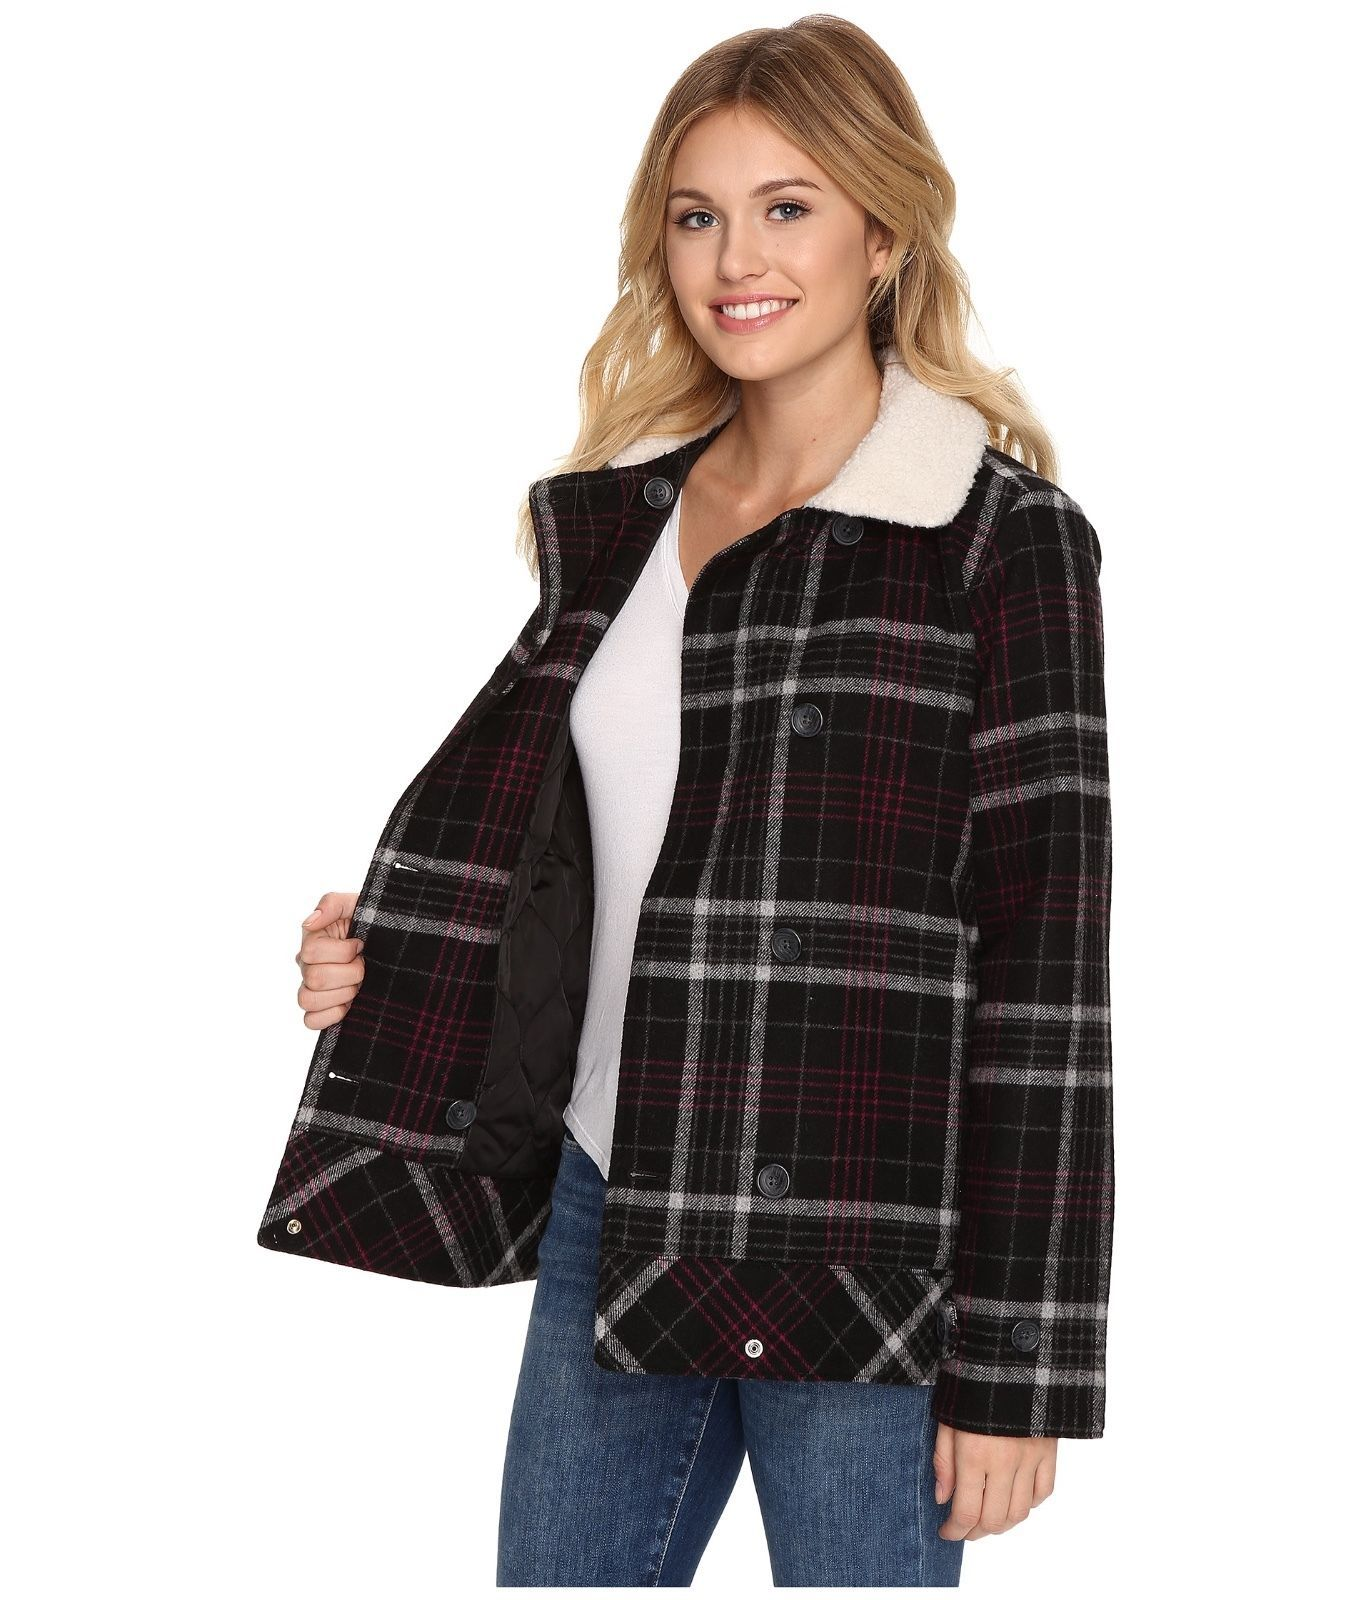 Primary image for New Vans Womens Spirit Animal Double Breasted Wool Blend Casual Jacket XS $130